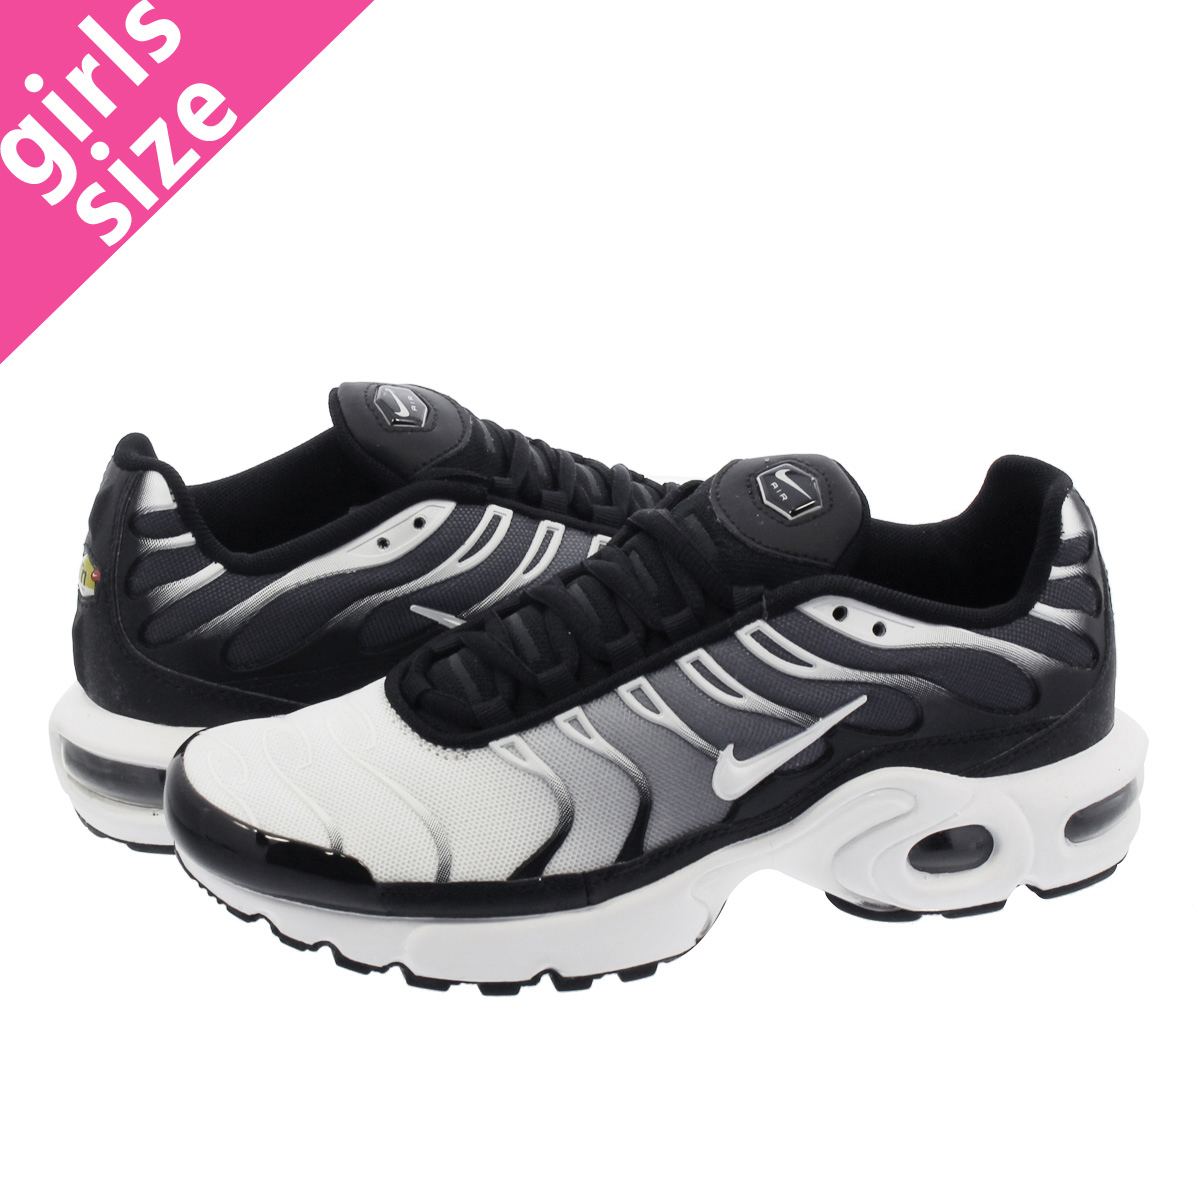 SELECT SHOP LOWTEX  NIKE AIR MAX PLUS GS Kie Ney AMAX plus GS GREY ... f6ed99d5e